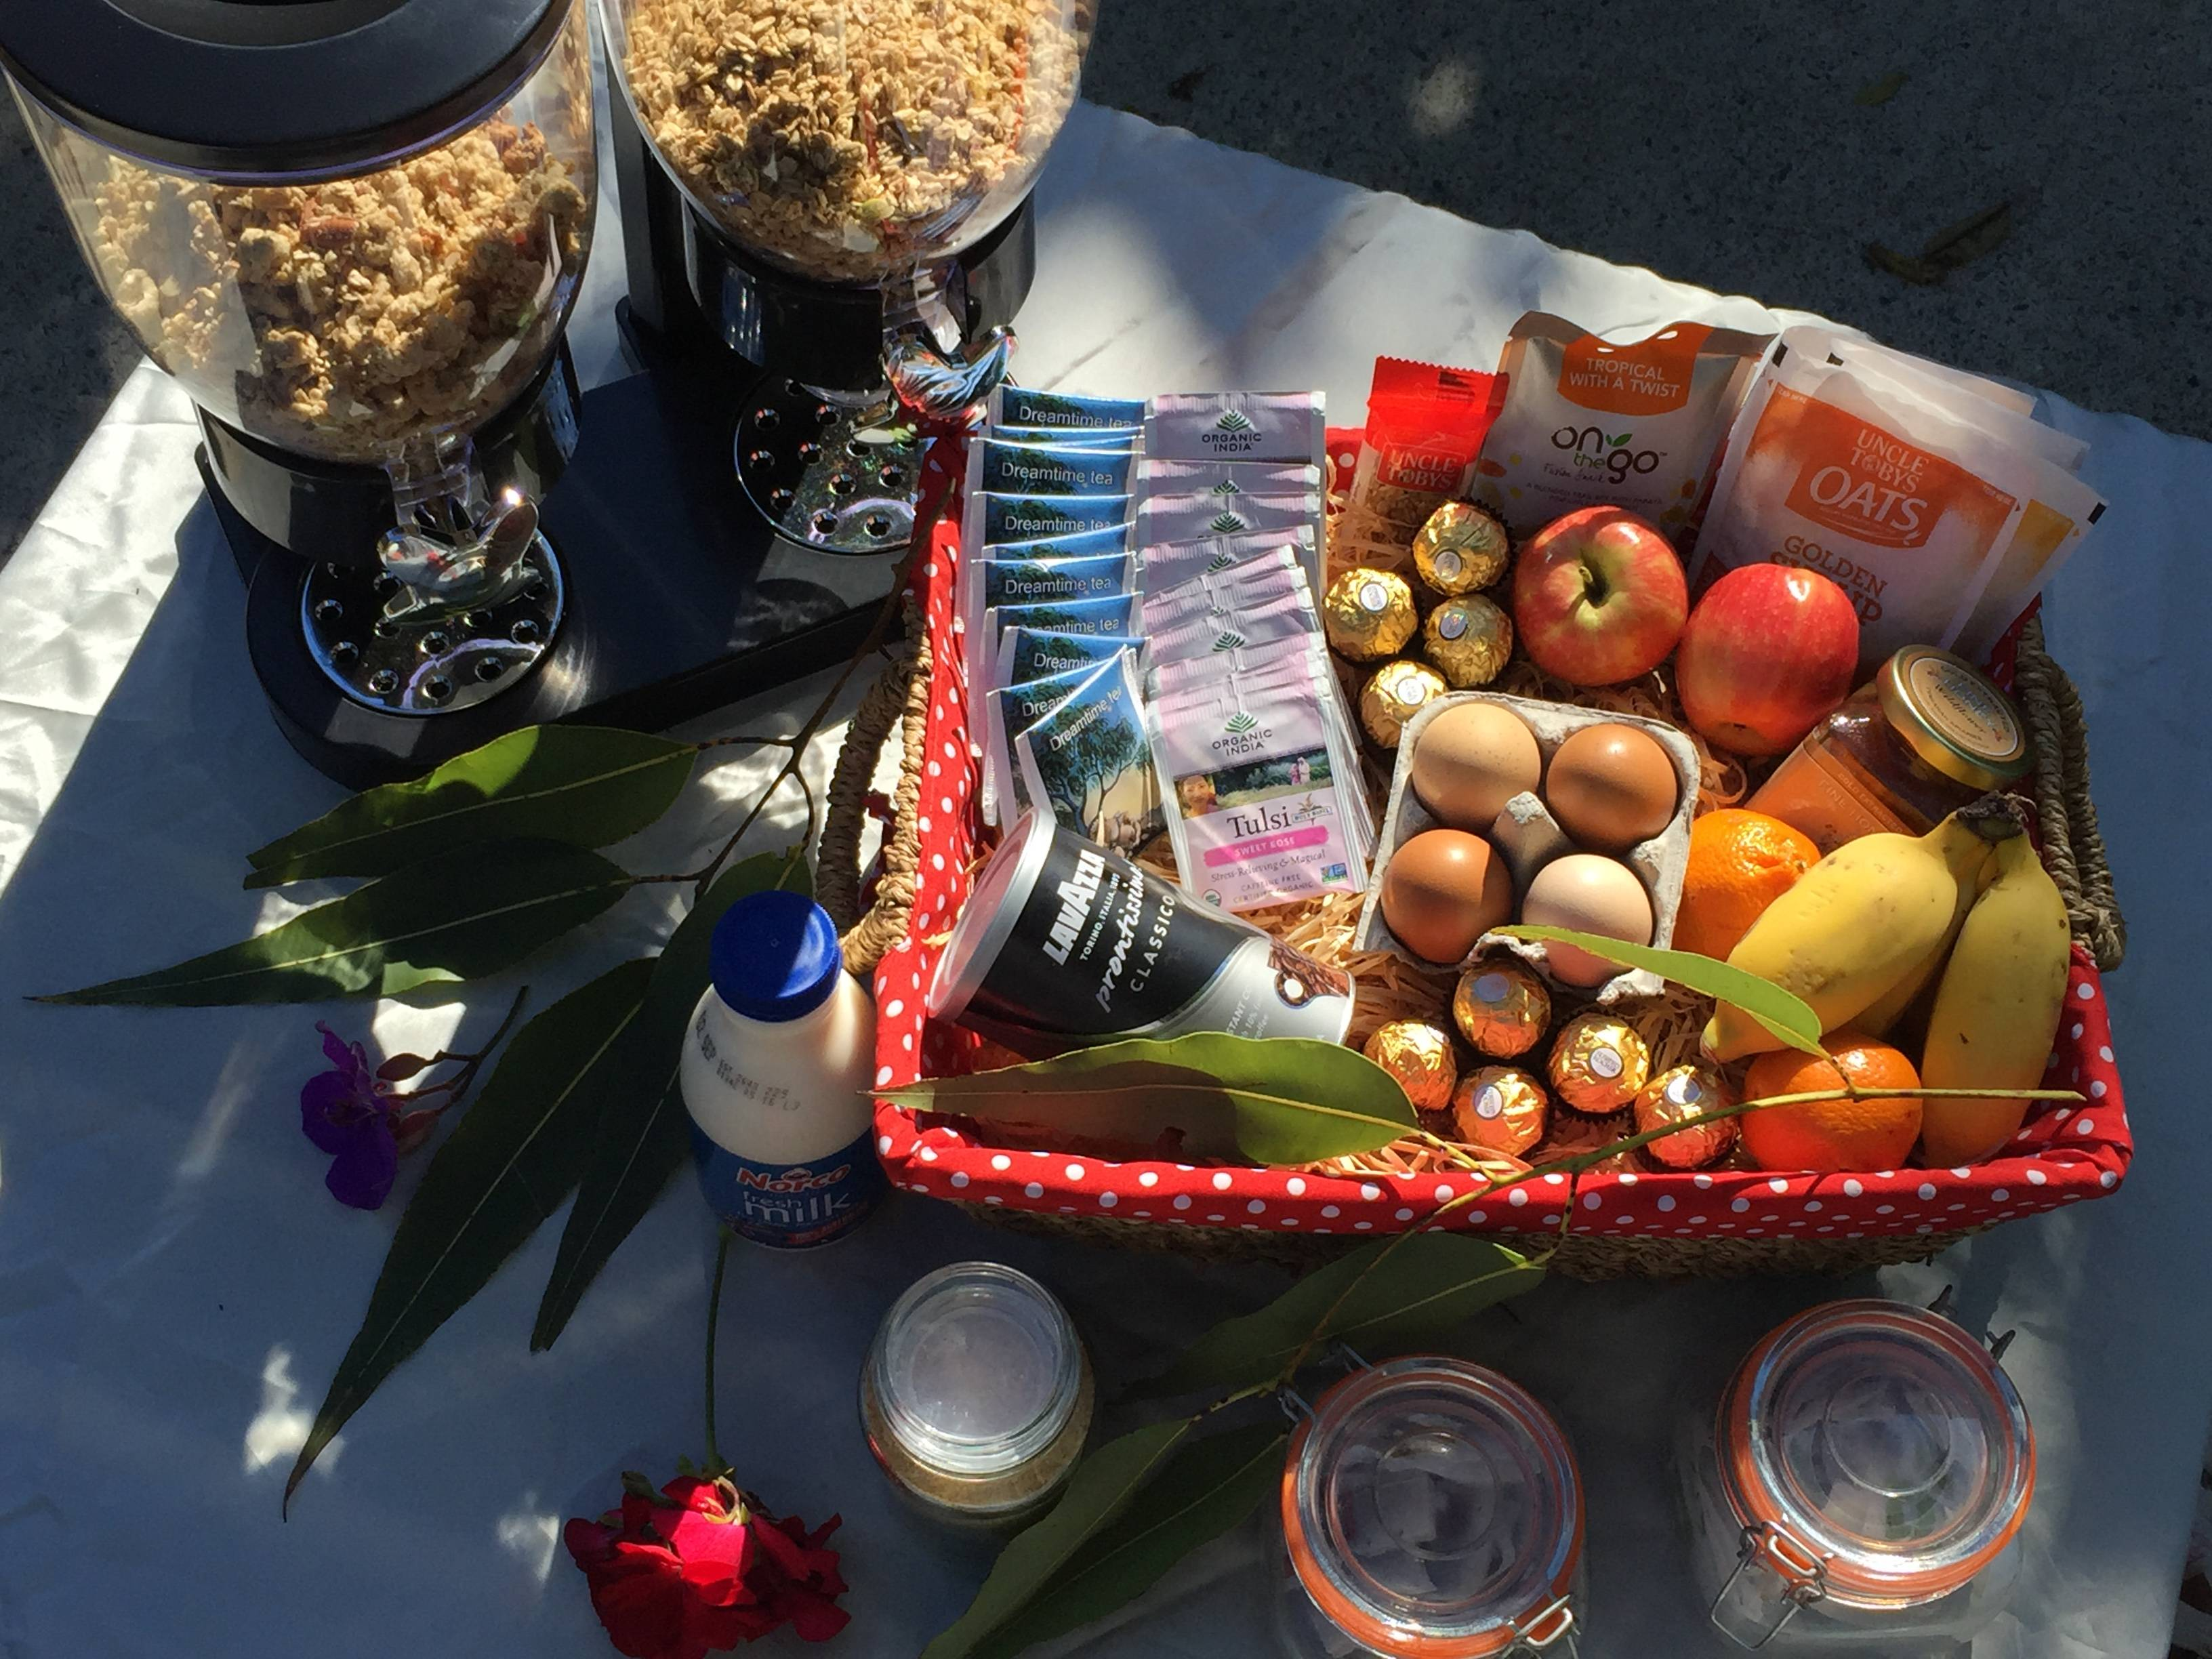 Welcome Hamper provisions provided. gallery image